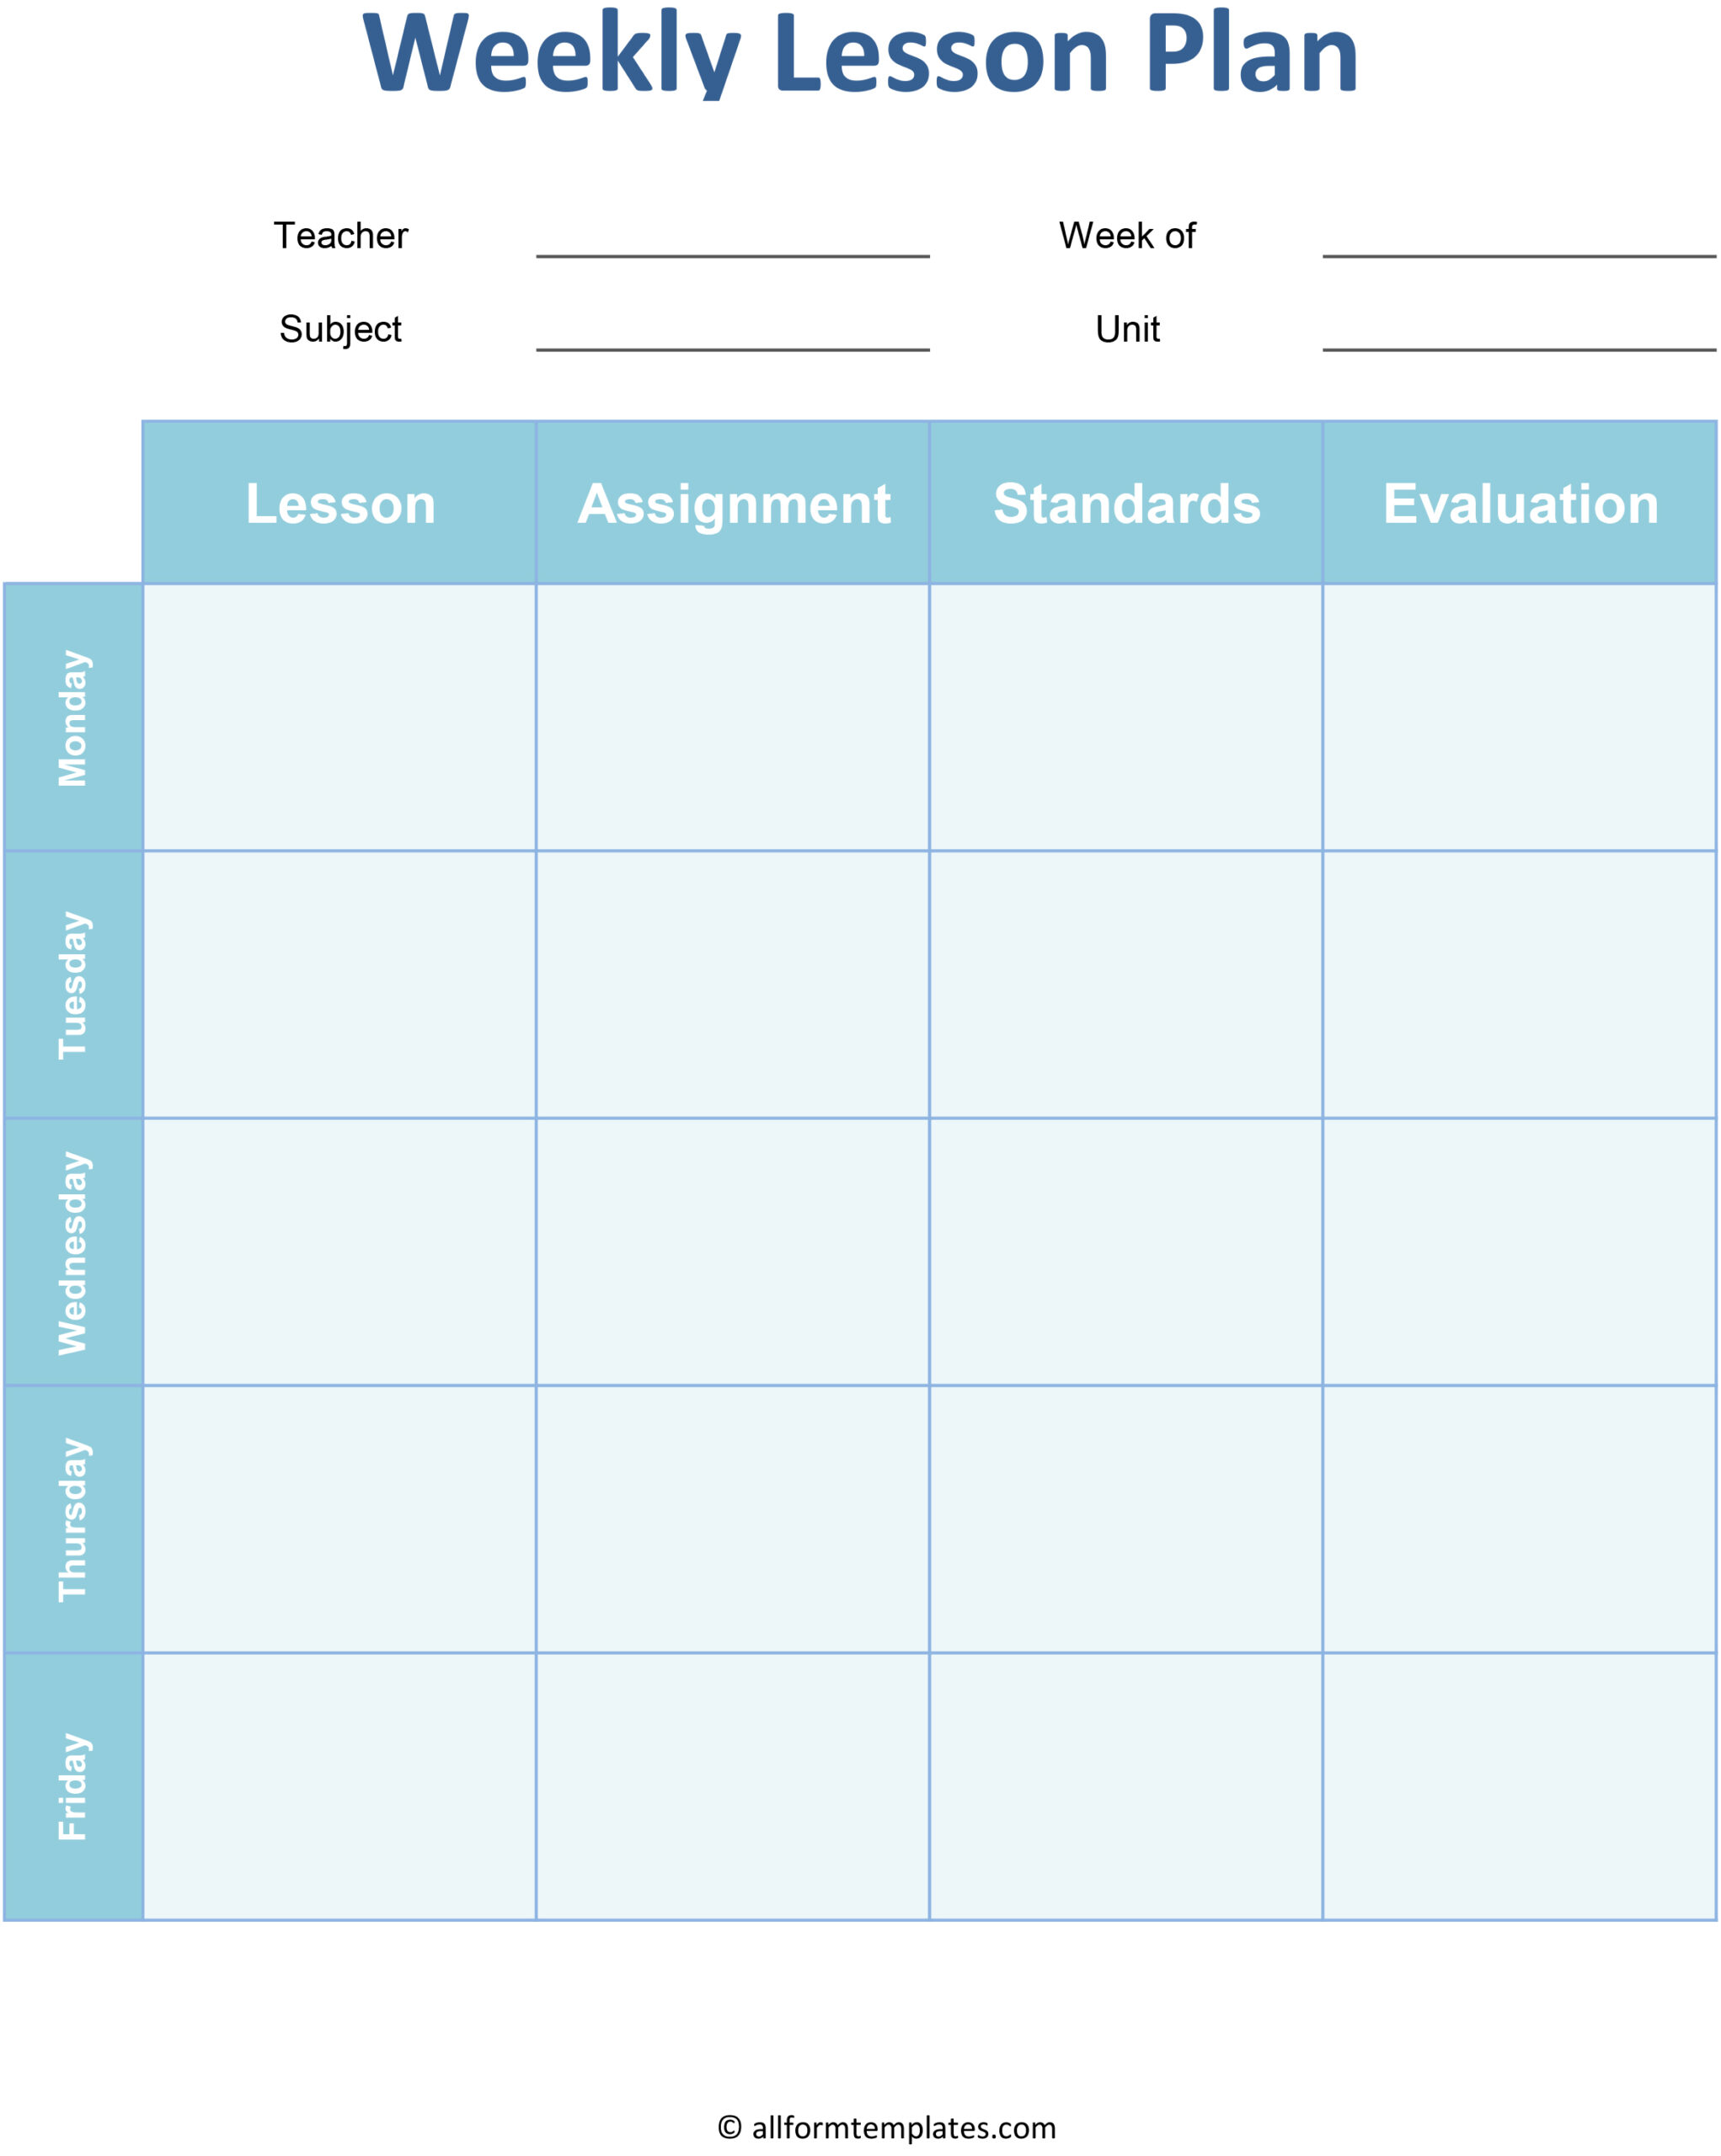 Weekly-Lesson-Planner-HD